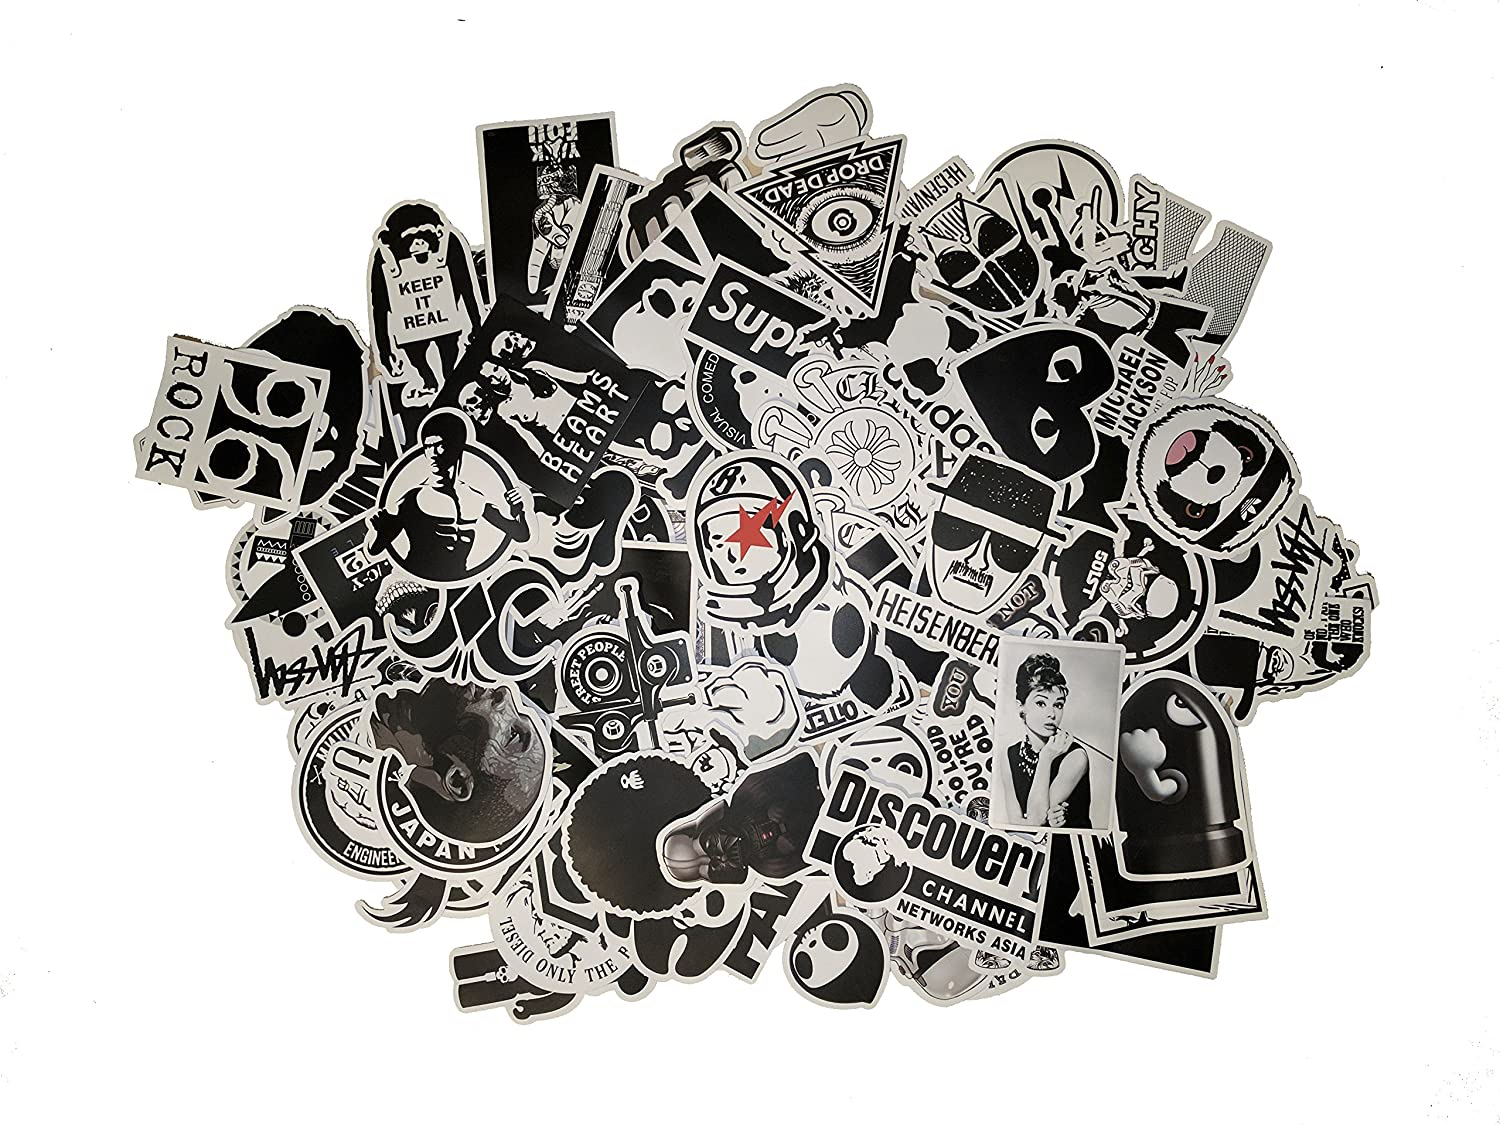 Picavinci Design 100 pcs Sticker Pack Hippies Graffiti Vinyl Decal for car Helmet Wall Luggage Bumper Snowboard hoverboards Phone Laptop Motorcycle Bike Bottles Decal Bomb F